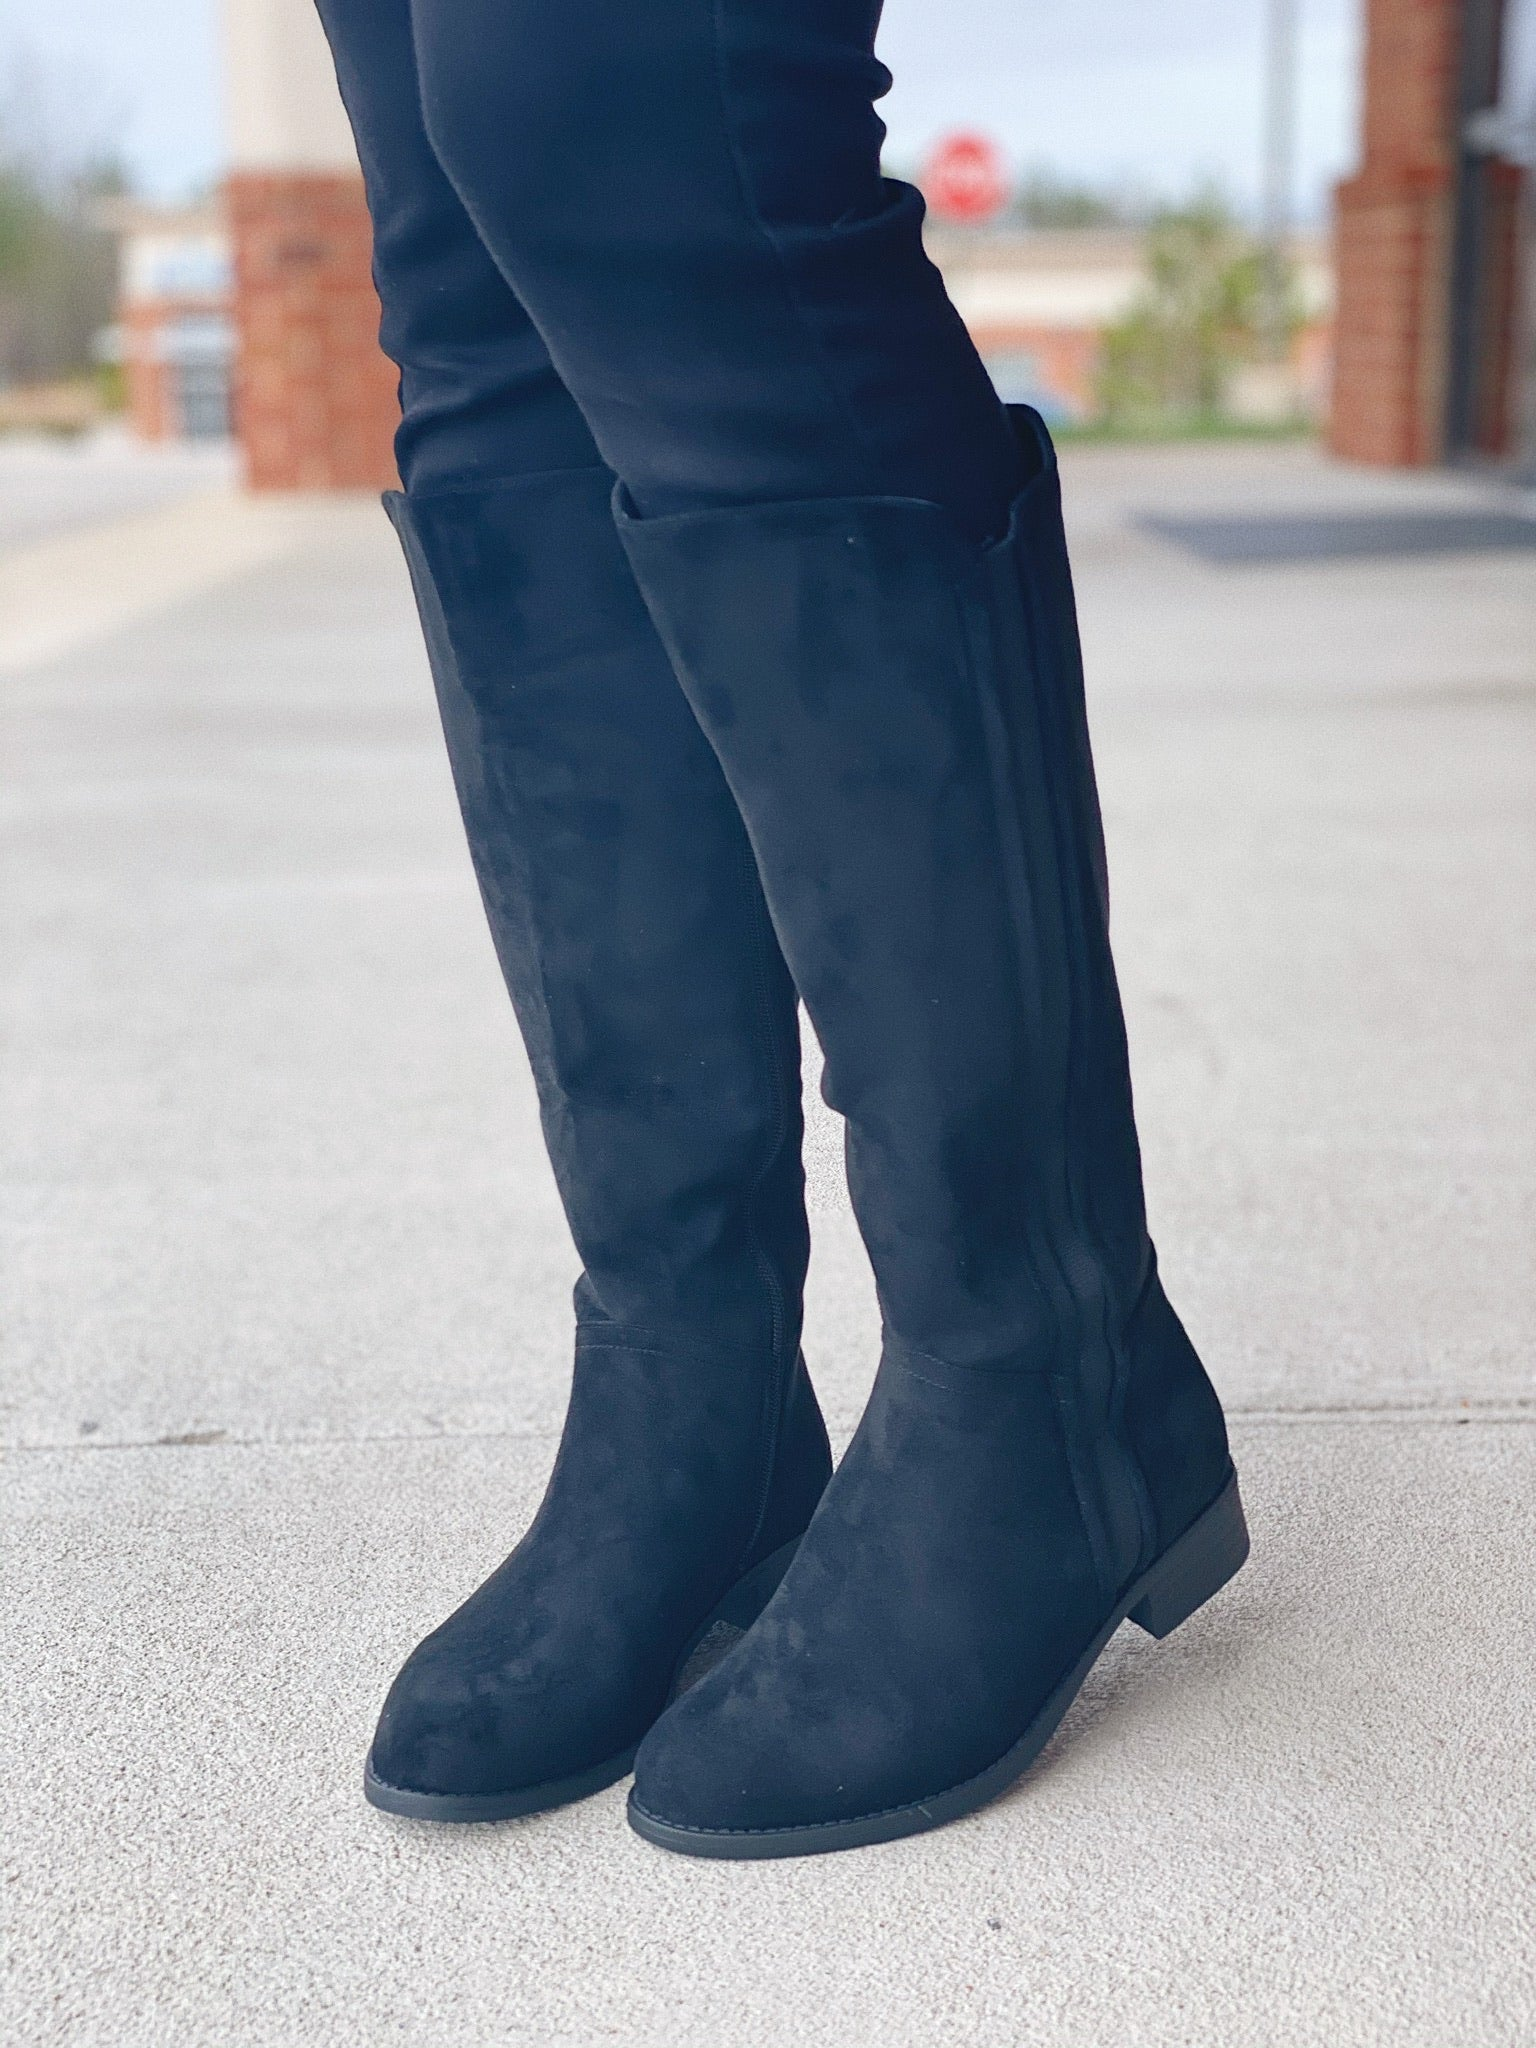 The Trixie Tall Boot in Black